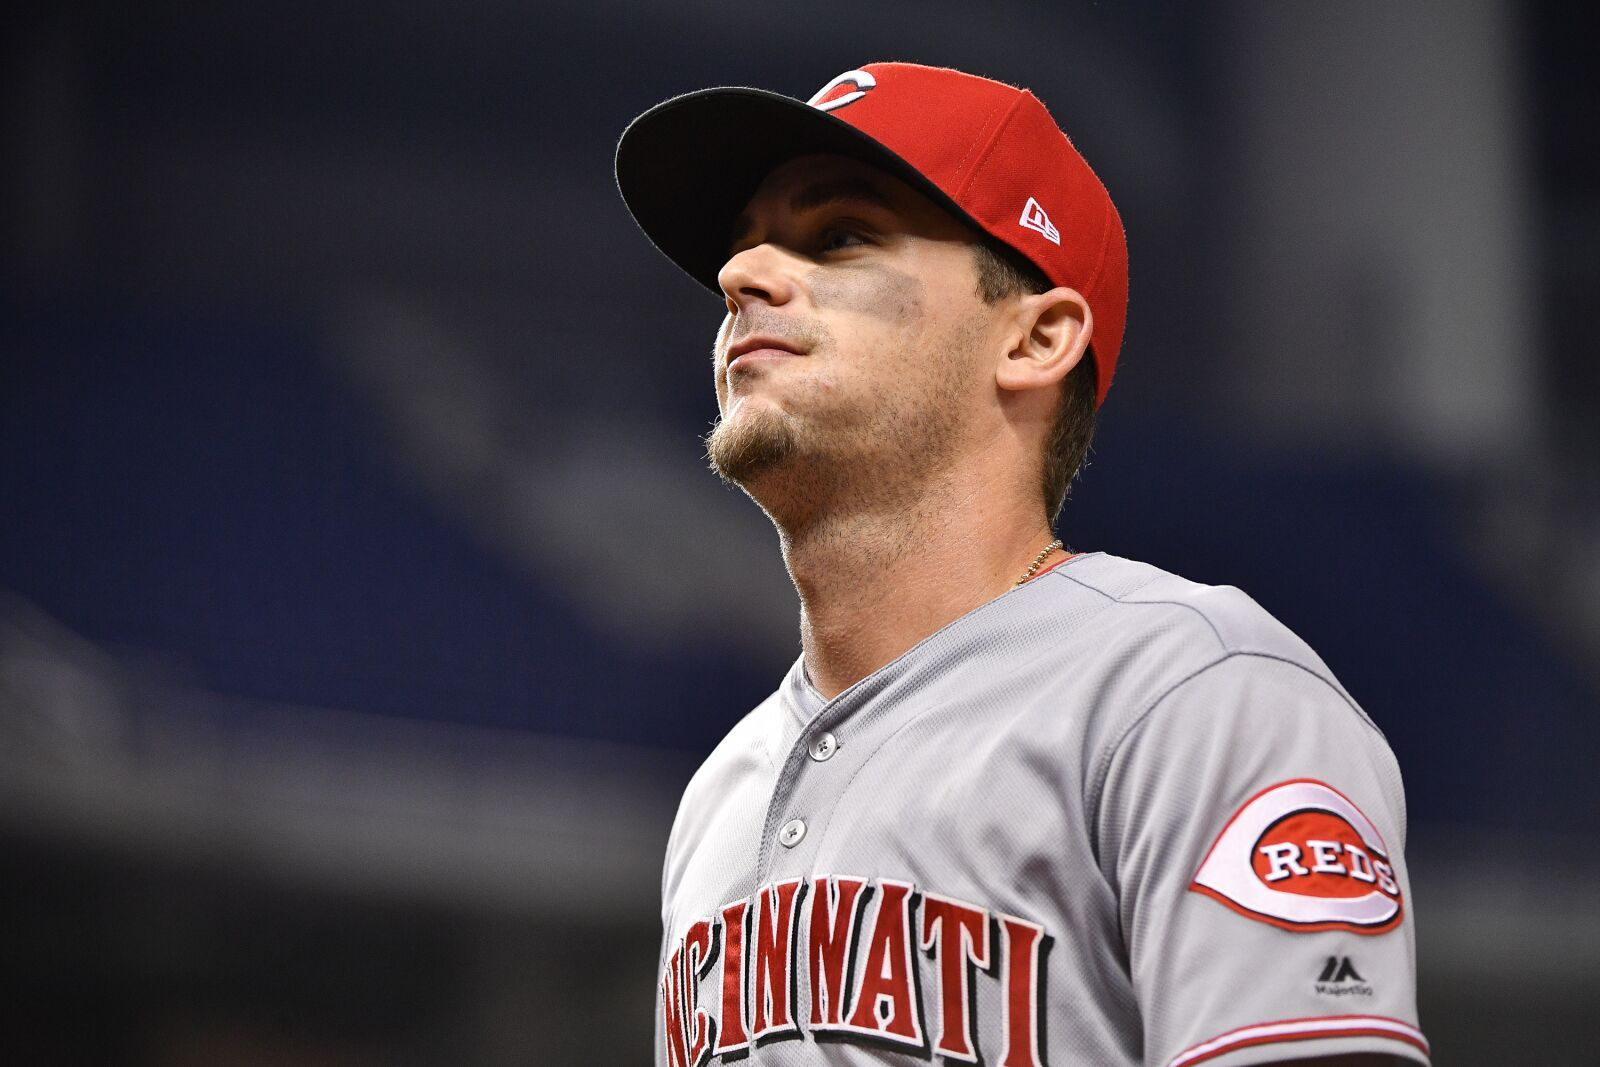 Cincinnati Reds: Scooter Gennett out 2-3 Months with Groin Injury